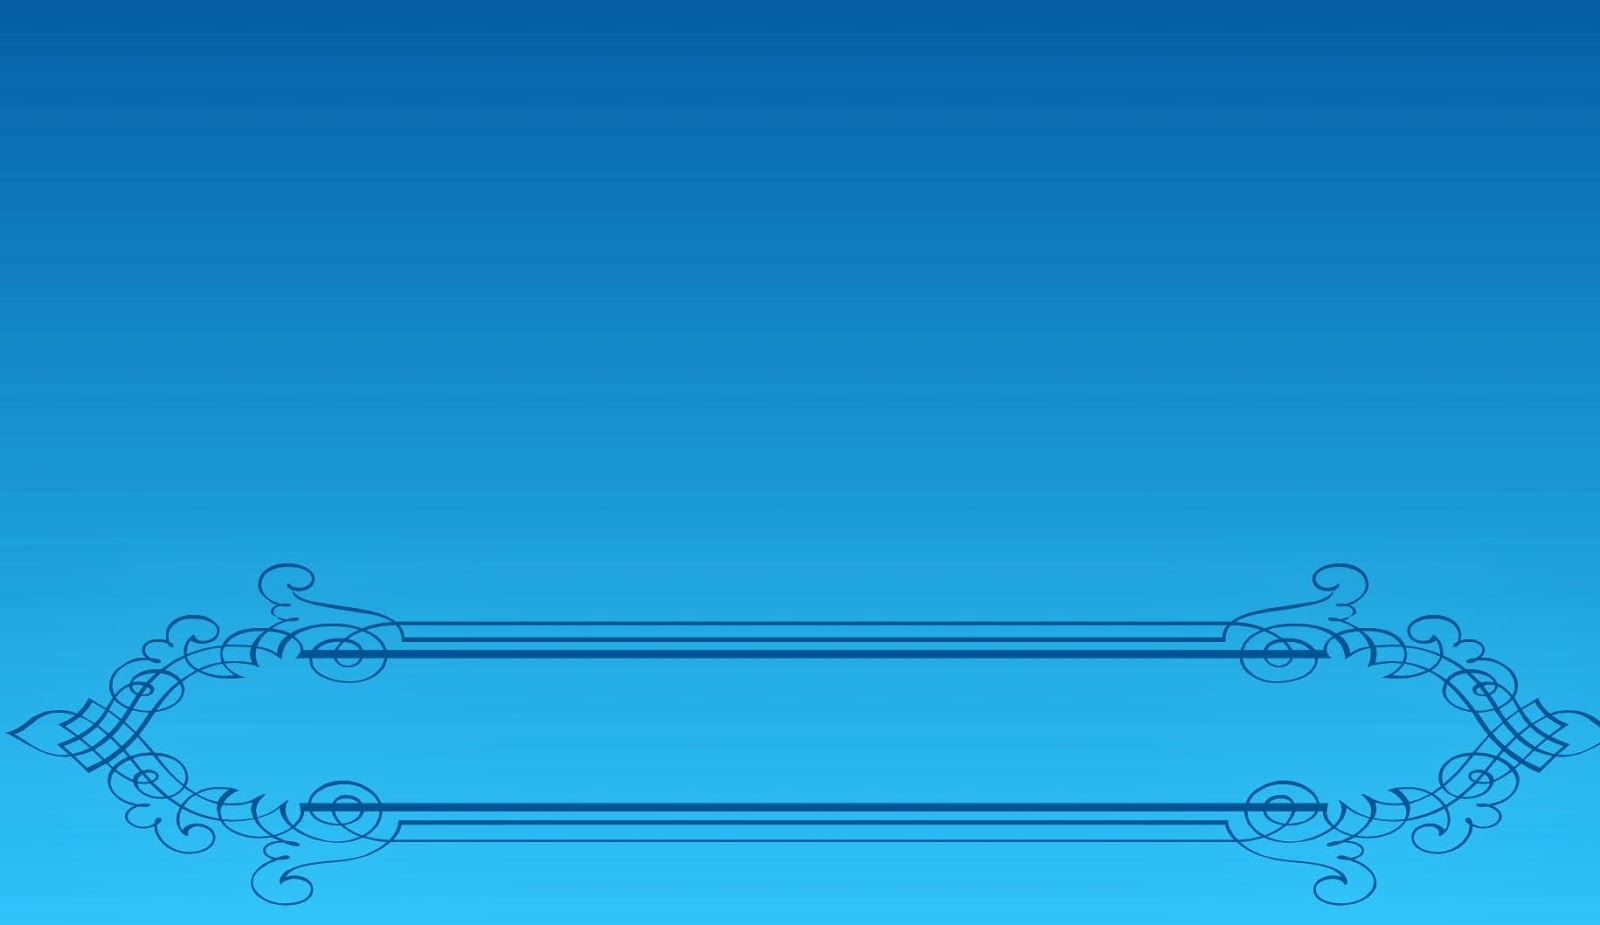 simple design background and wallpaper free: simple desain background ...